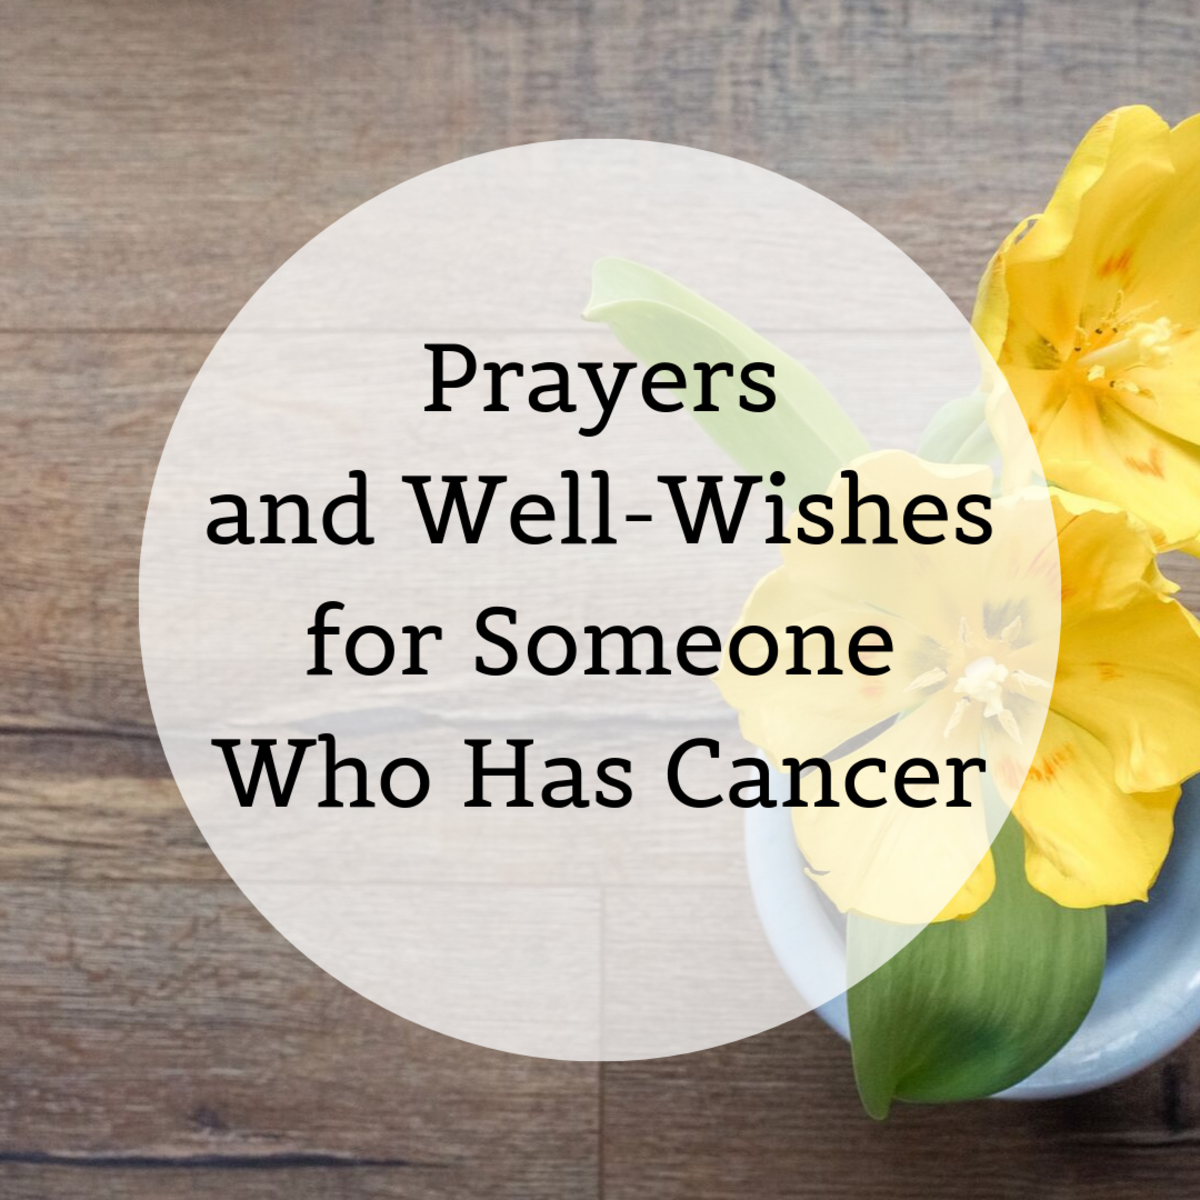 Finding the right words to comfort a cancer patient is difficult. For those who are religious, these messages of prayer and well-wishes can help.